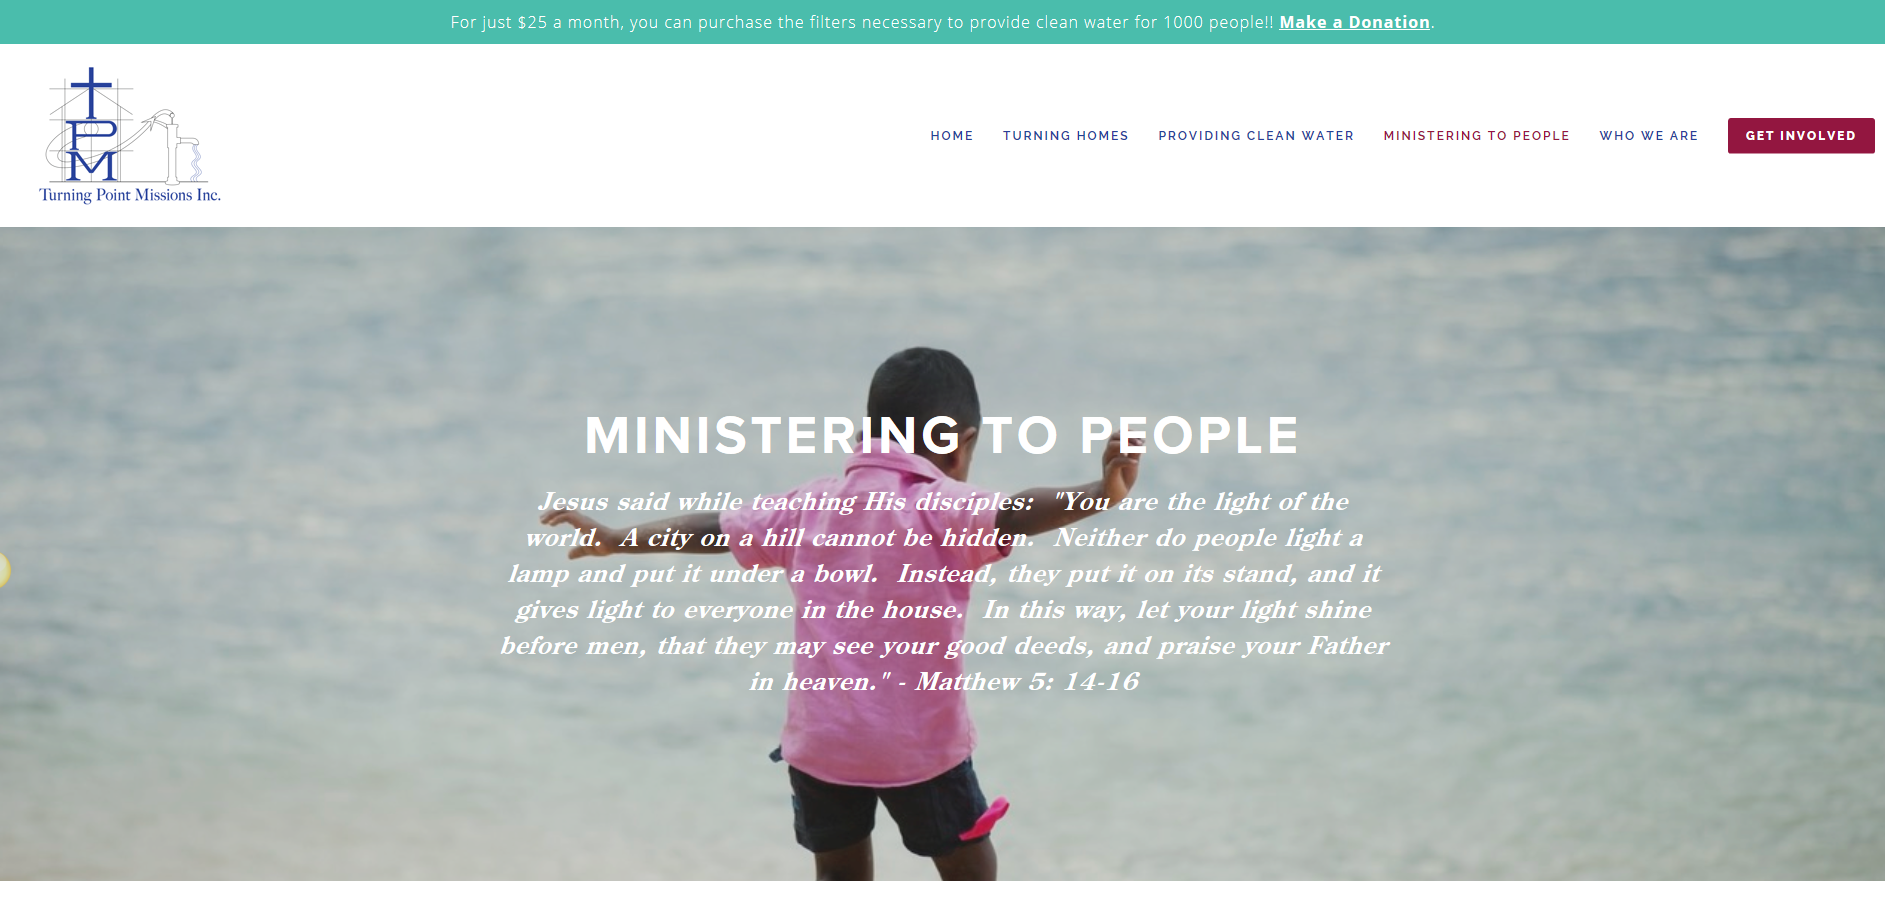 Turning Point Missions - Ministering